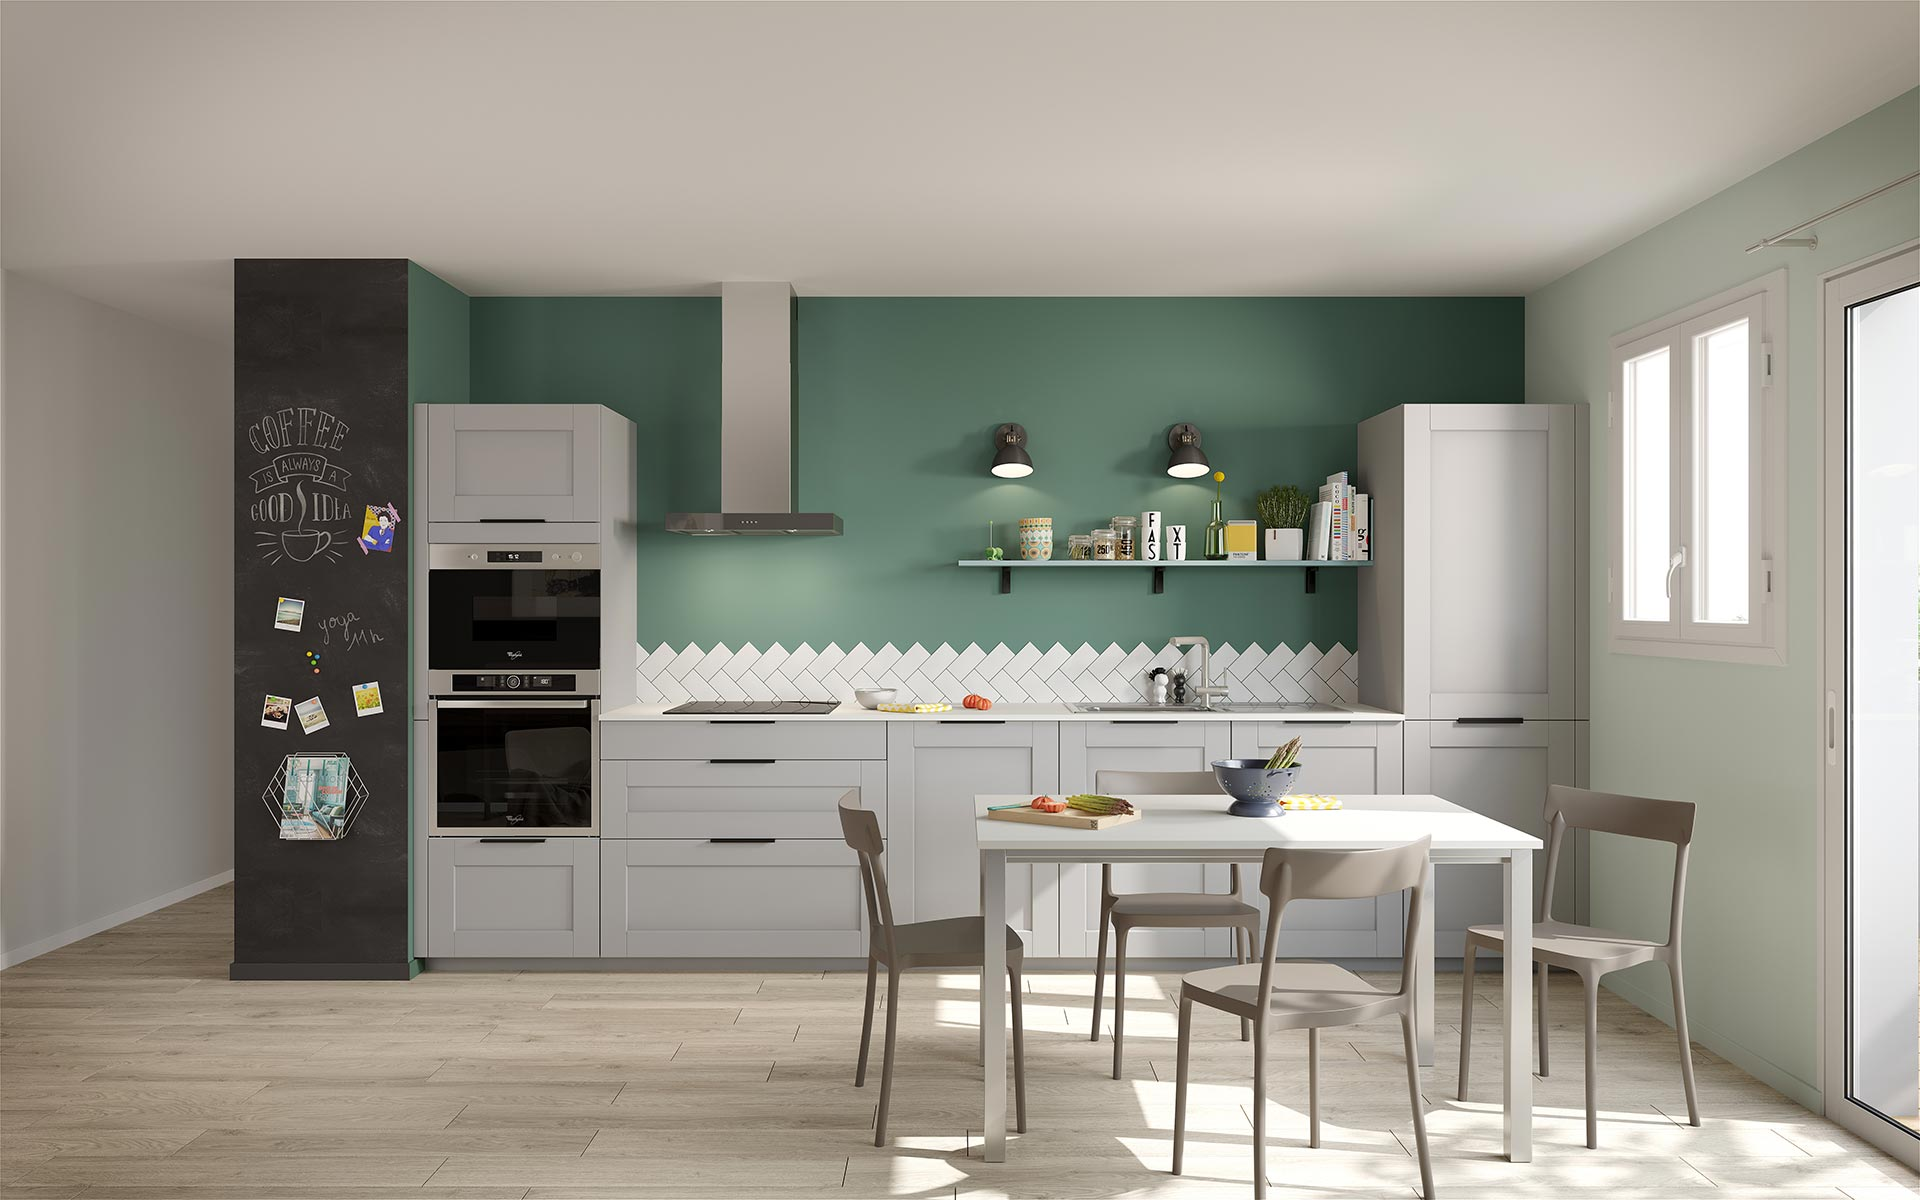 3D image of a kitchen created by Valentinstudio